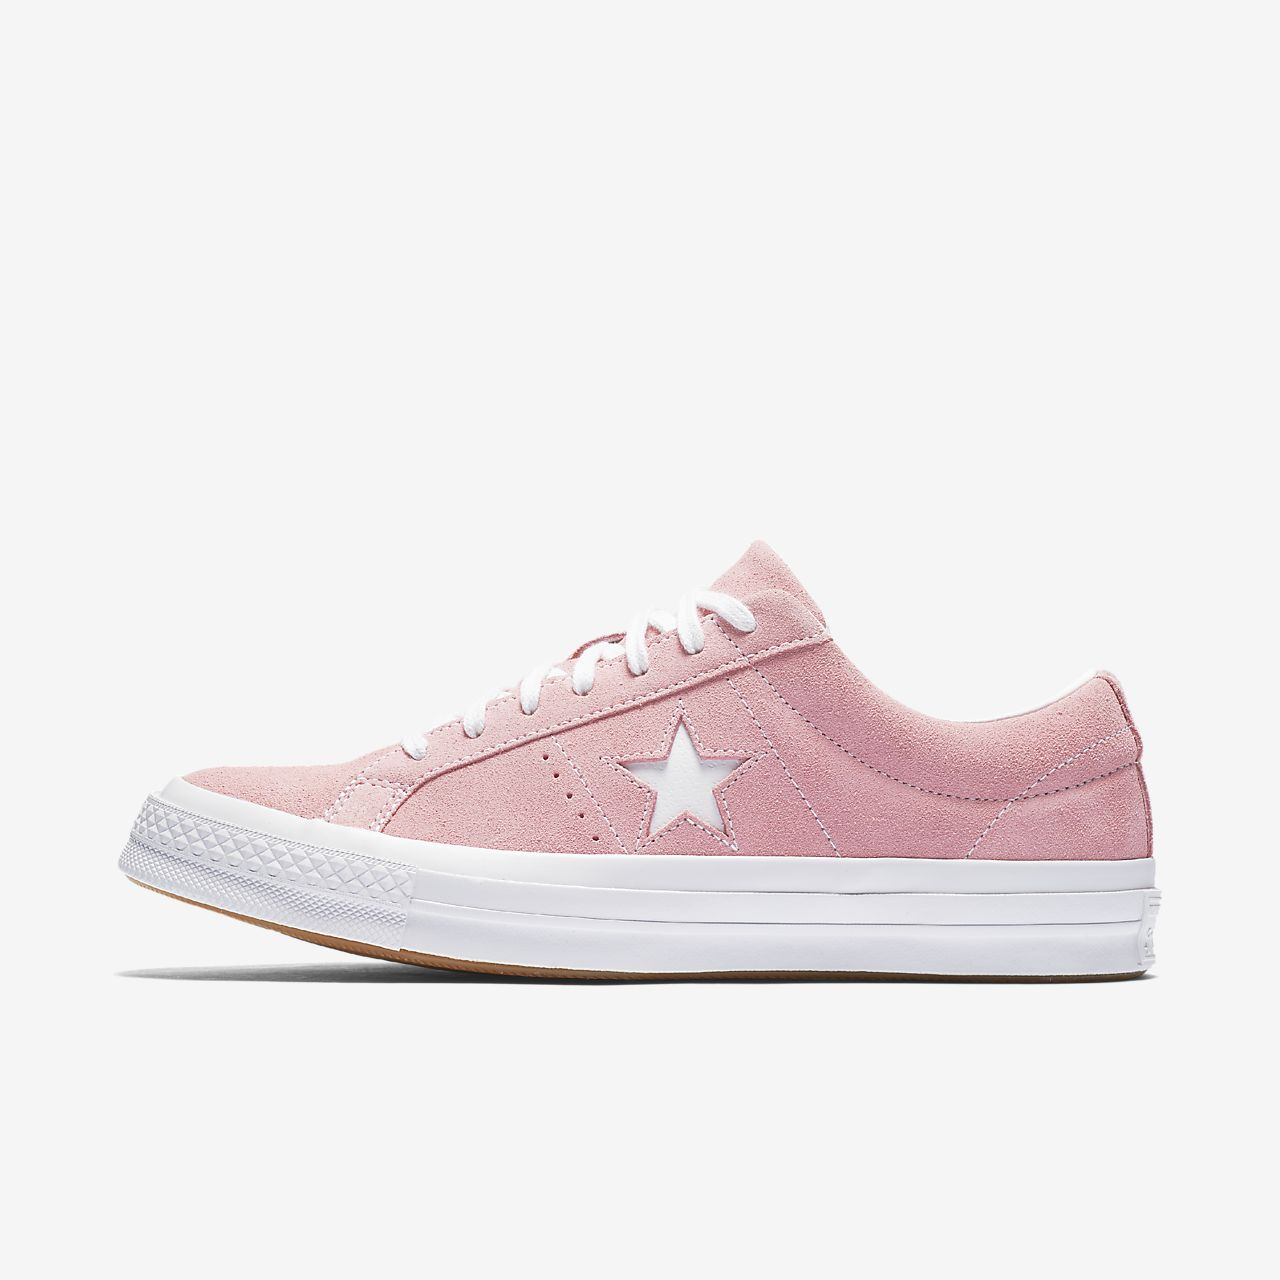 eab9273068bb ... aliexpress converse one star classic suede low top 870ed 57ca6